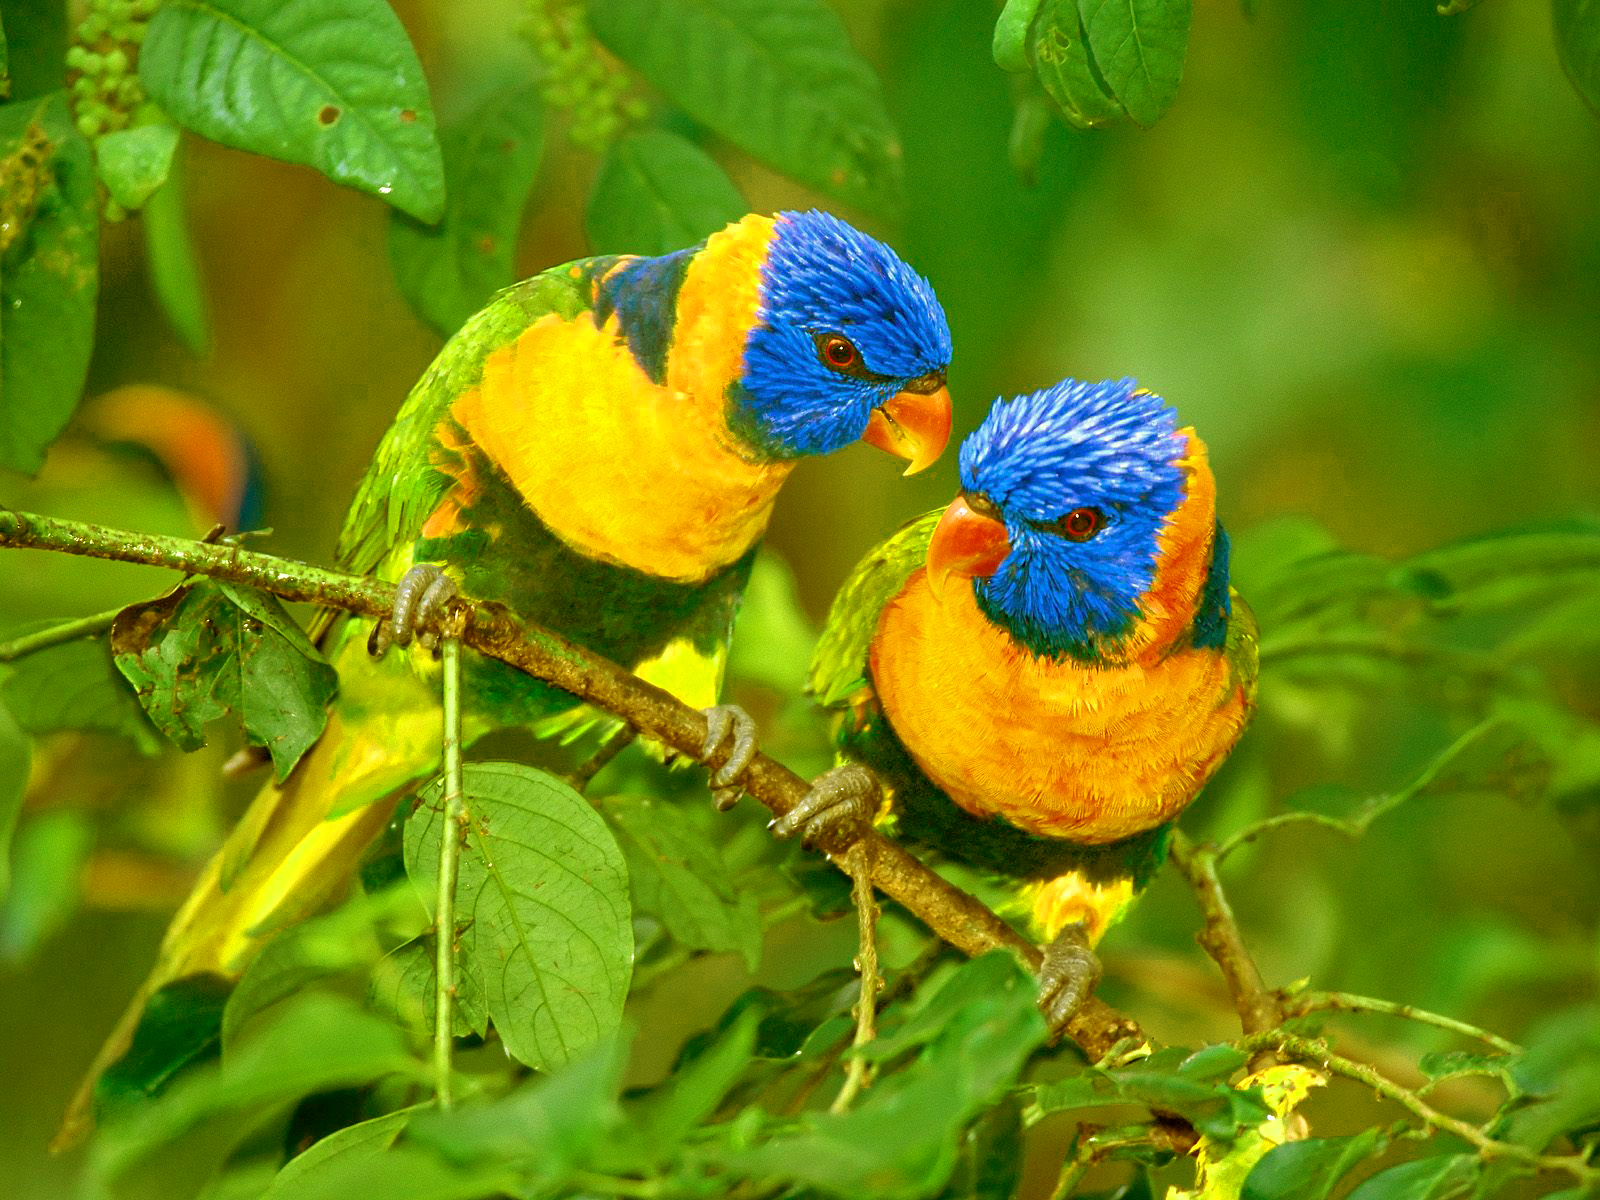 Best Love Fond Ecran Hd: Top 47 Most Dashing And Beautiful Parrot Wallpapers In HD